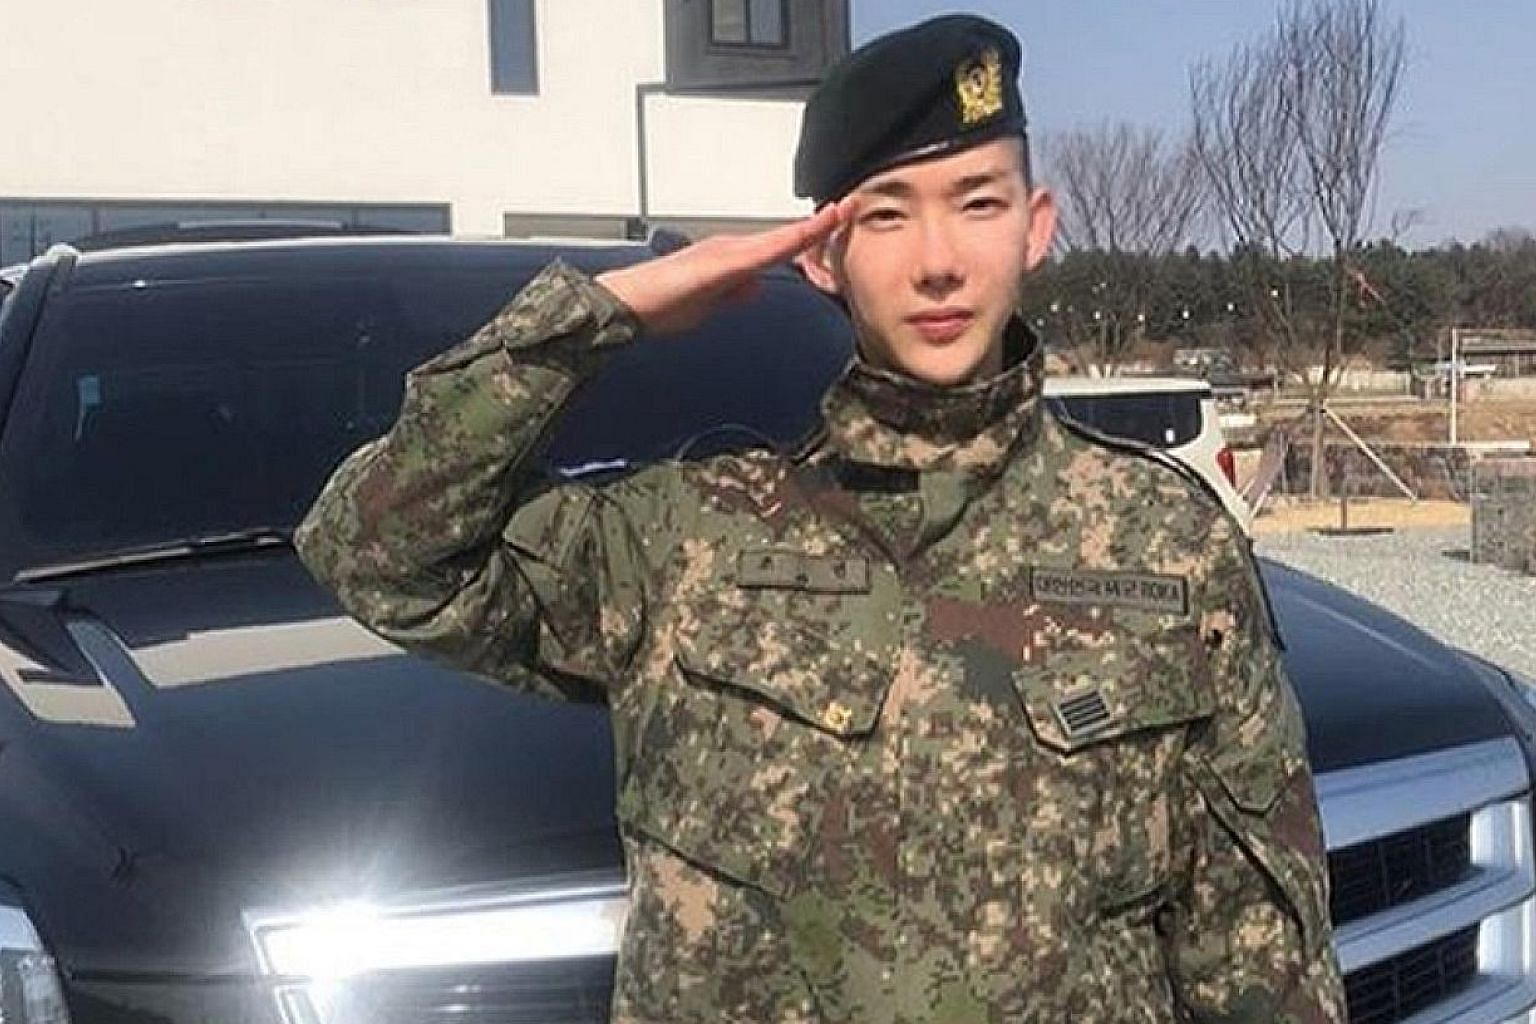 Jo Kwon, a former member of South Korean boy band 2AM, announced his return as an entertainer, but did not specify if he would be returning to the group.